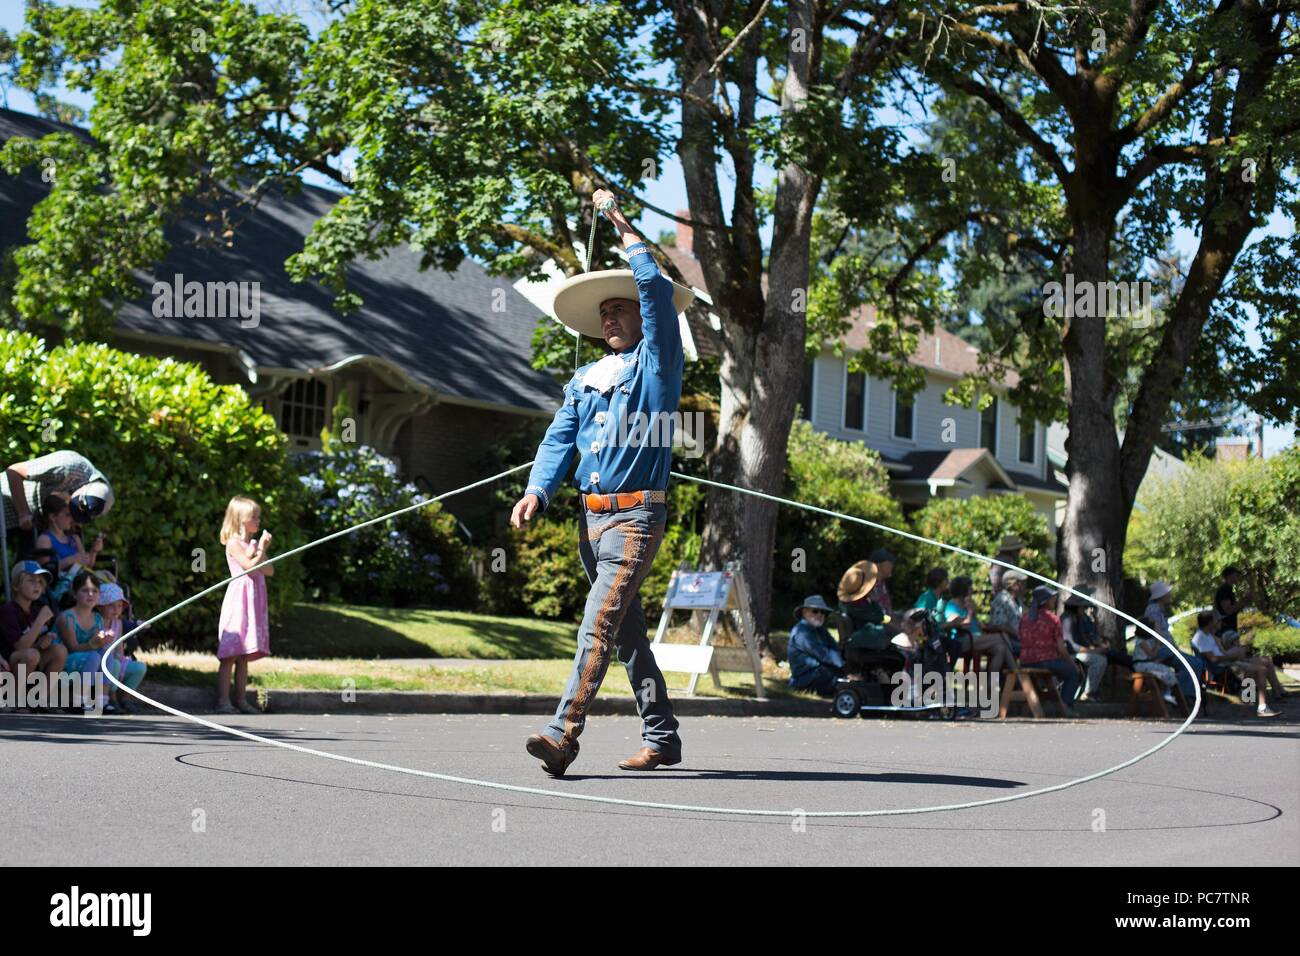 A man encircled in his own lasso, at the Eug Parade in Eugene, Oregon, USA. - Stock Image